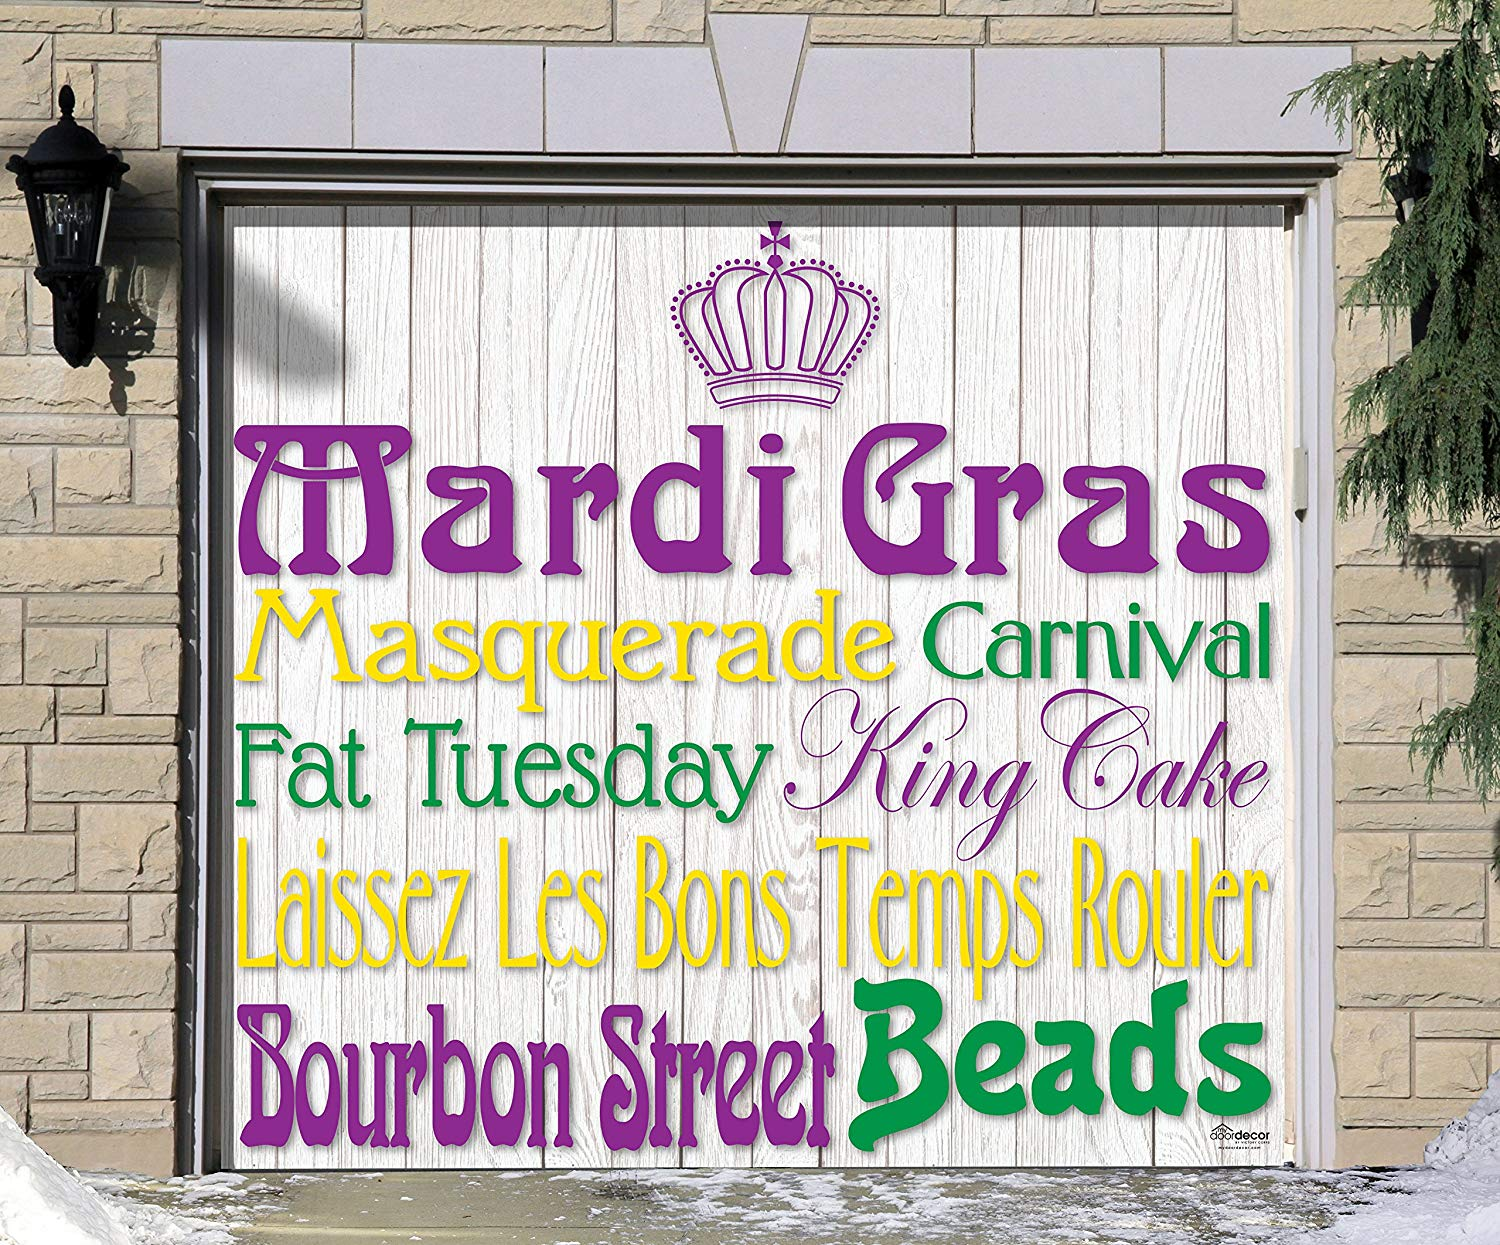 Victory Corps Outdoor Mardi Gras Decorations Garage Door Banner Cover Mural Décoration 7'x8' - Mardi Gras Words -The Original Mardi Gras Supplies Holiday Garage Door Banner Decor